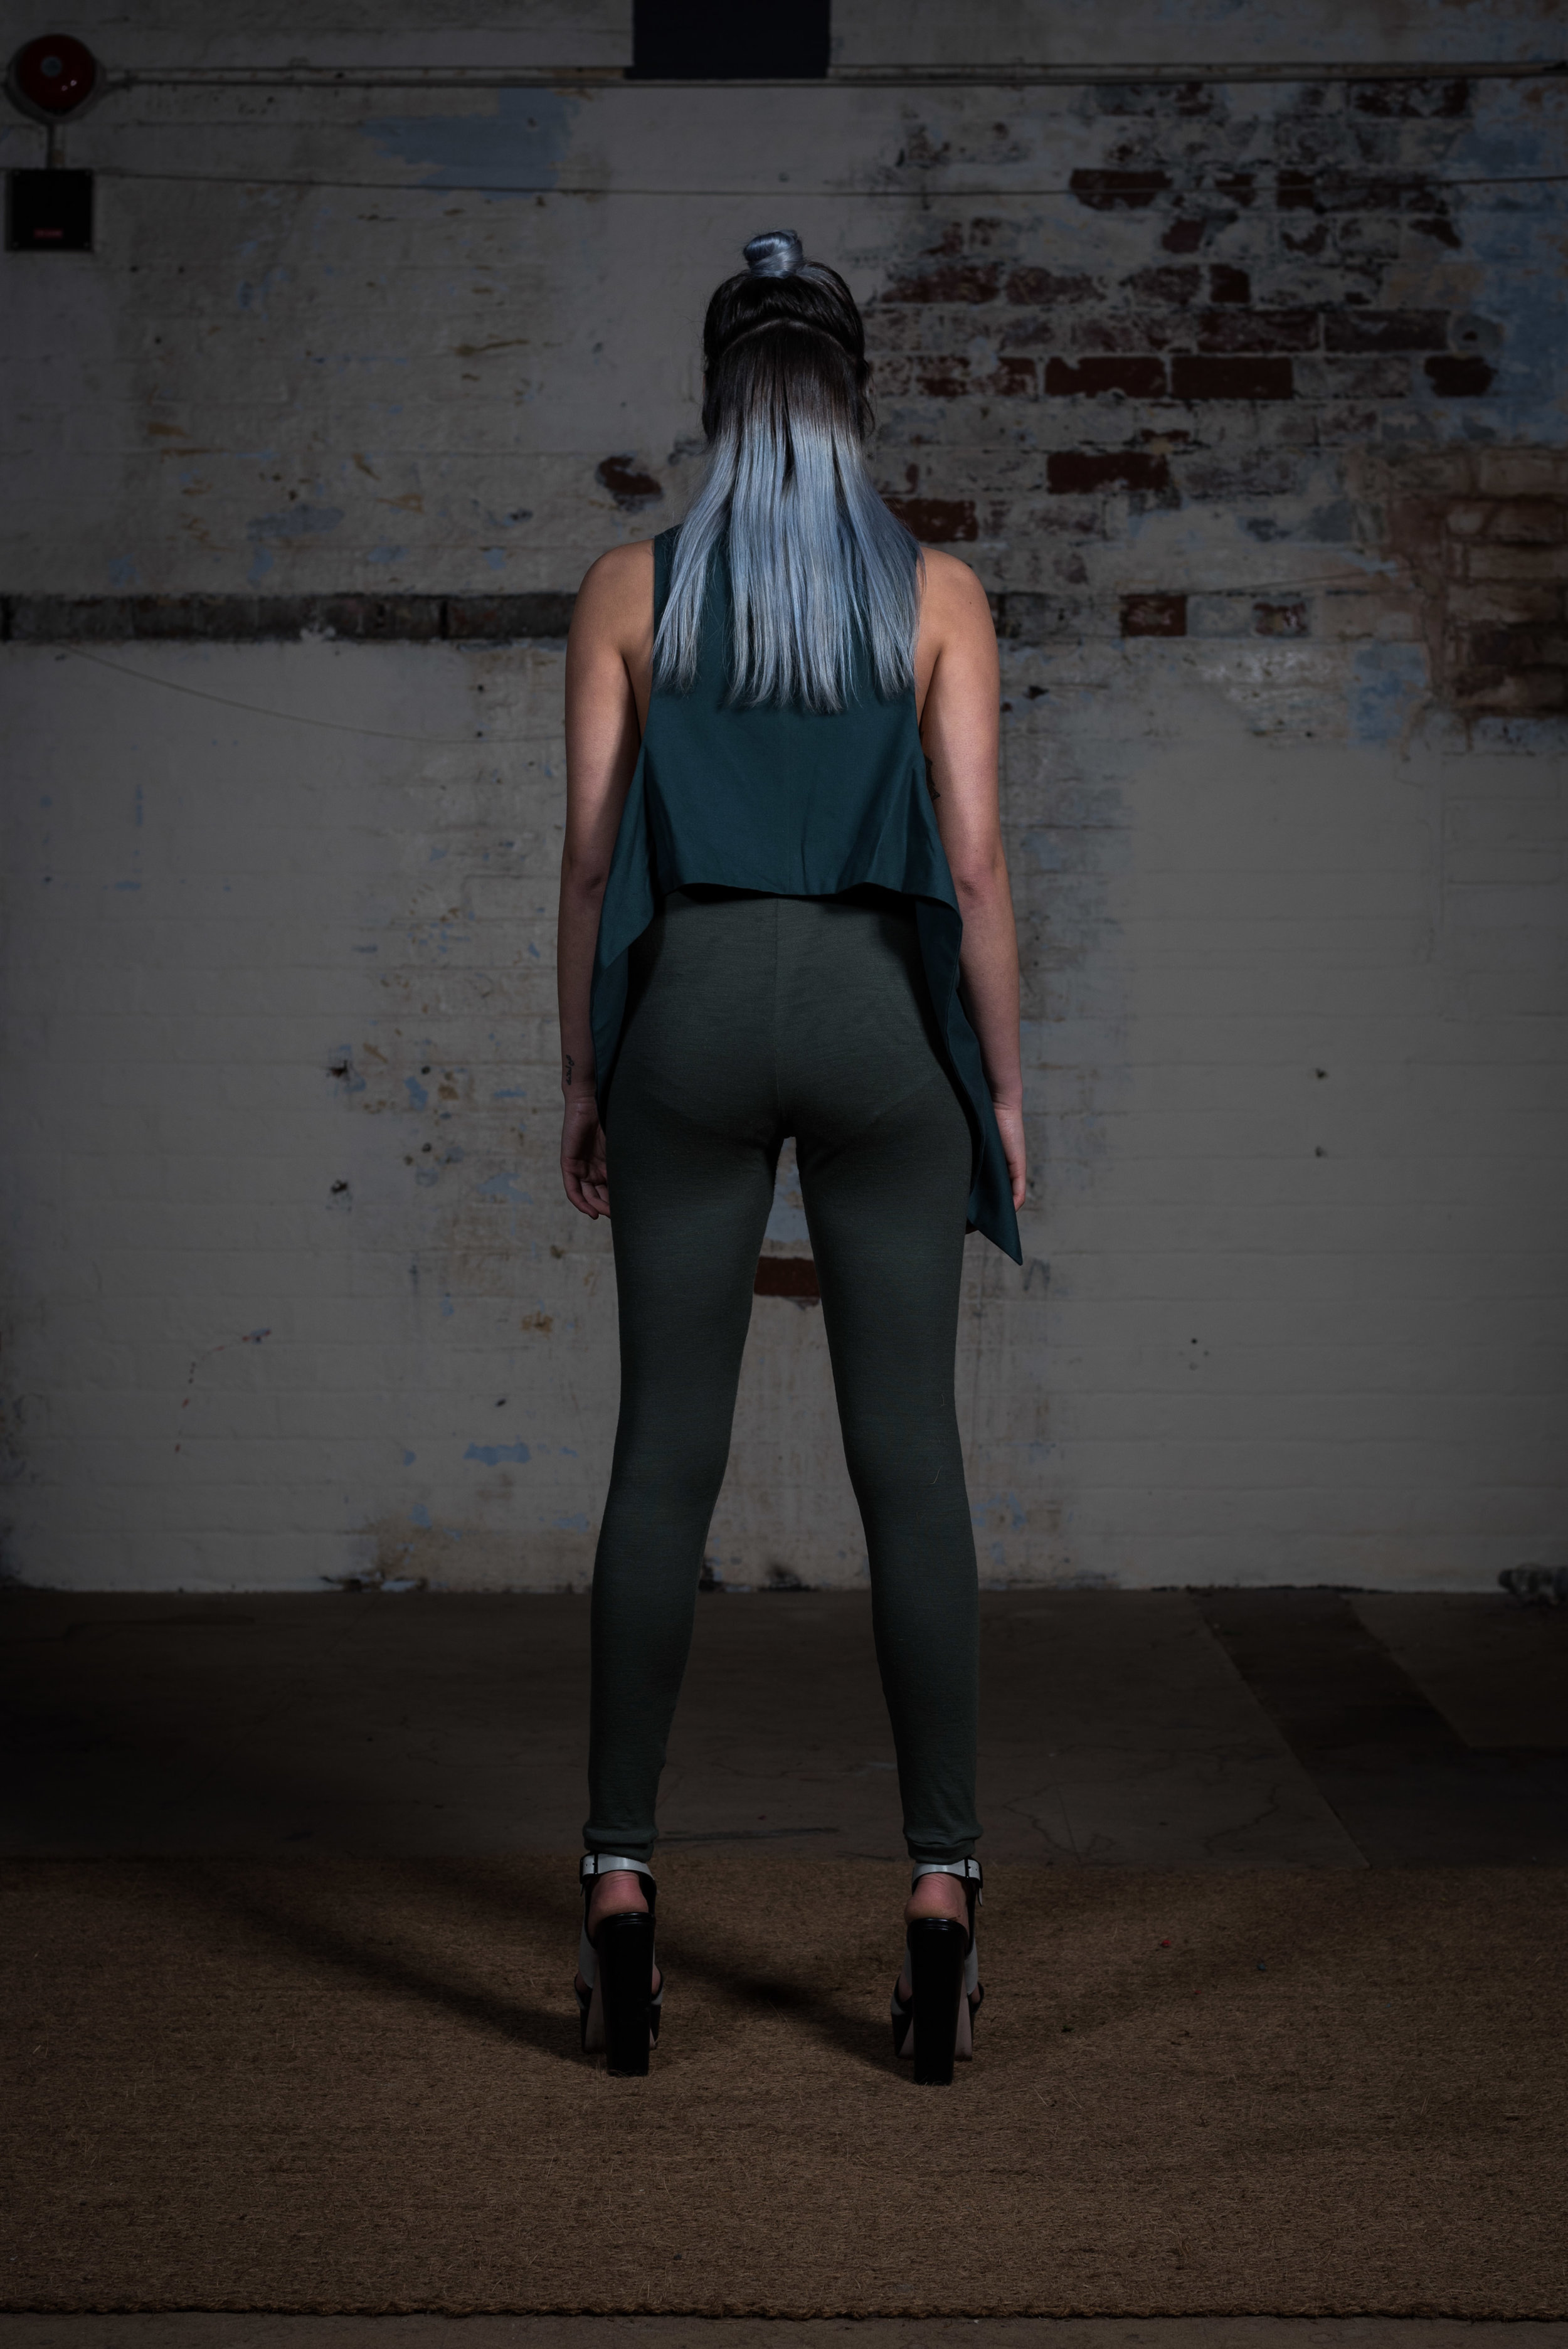 zaramia-ava-zaramiaava-leeds-fashion-designer-ethical-sustainable-teal-wrap-top-versatile-drape-grey-rei-cowl-leggings-styling-location-womenswear-models-photoshoot-23